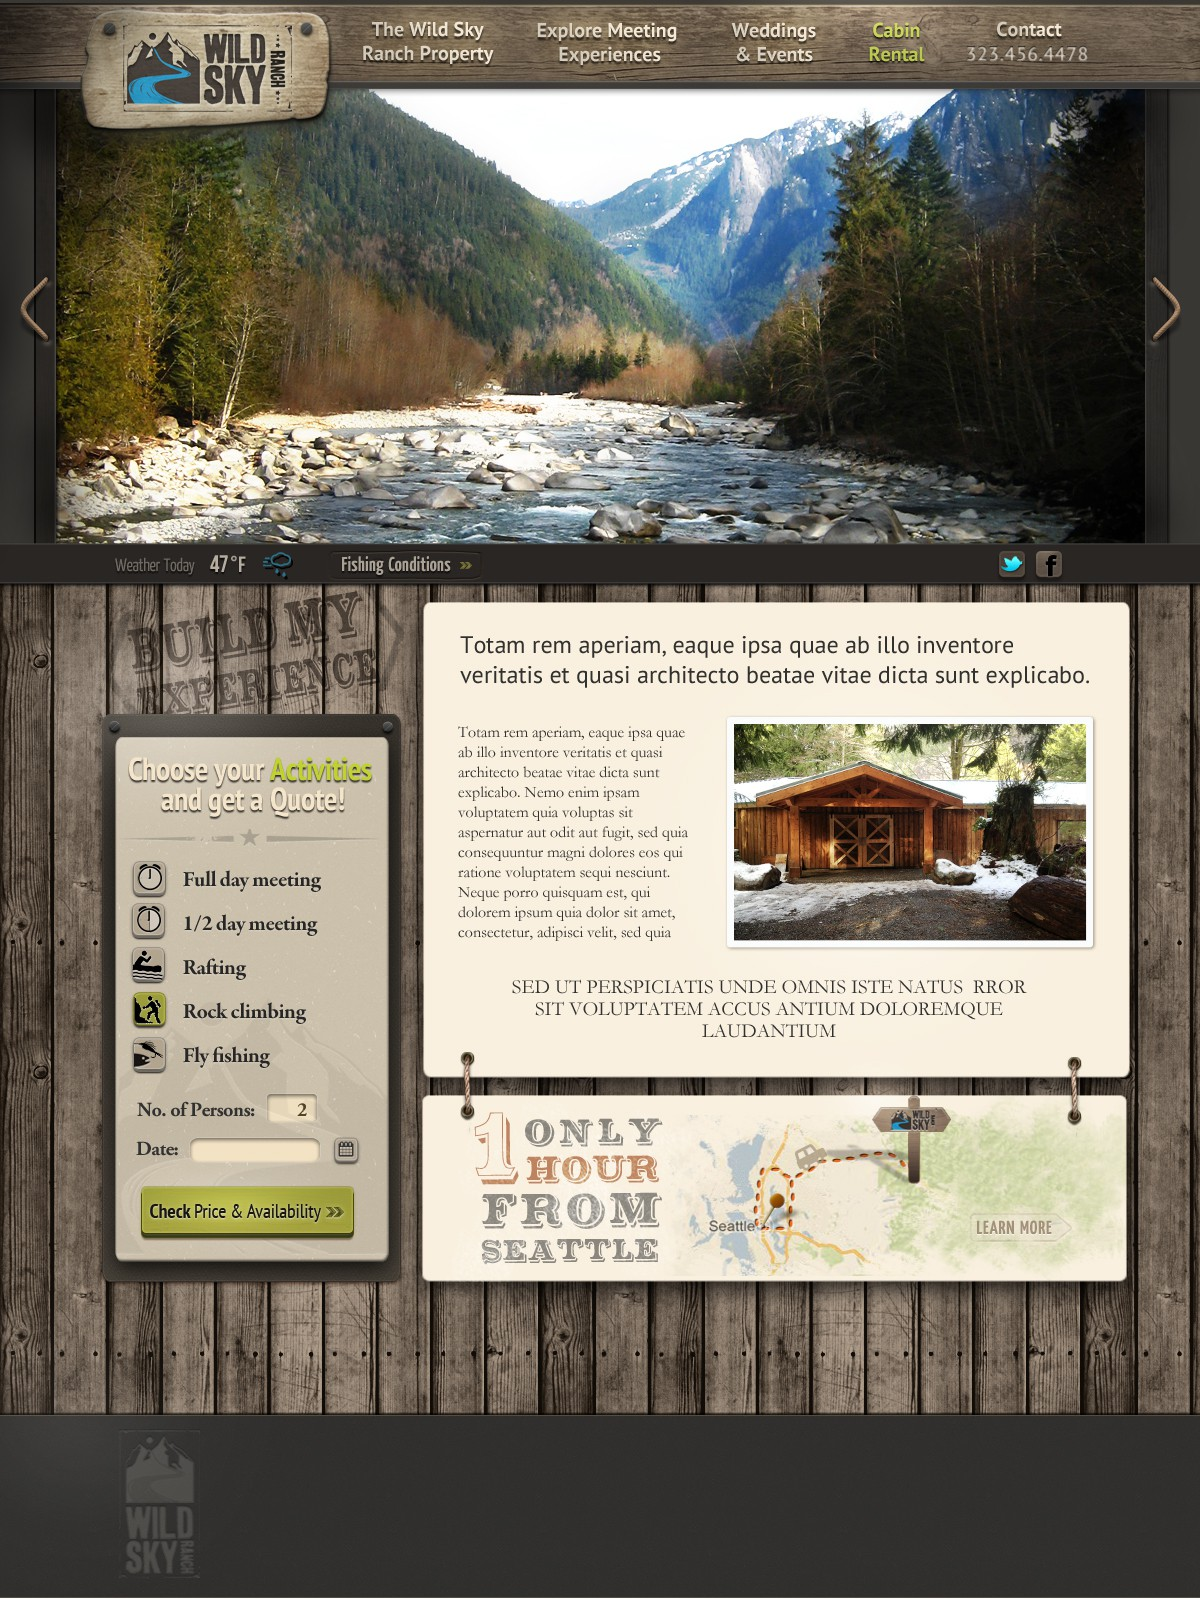 Help Wild Sky Ranch with a new website design